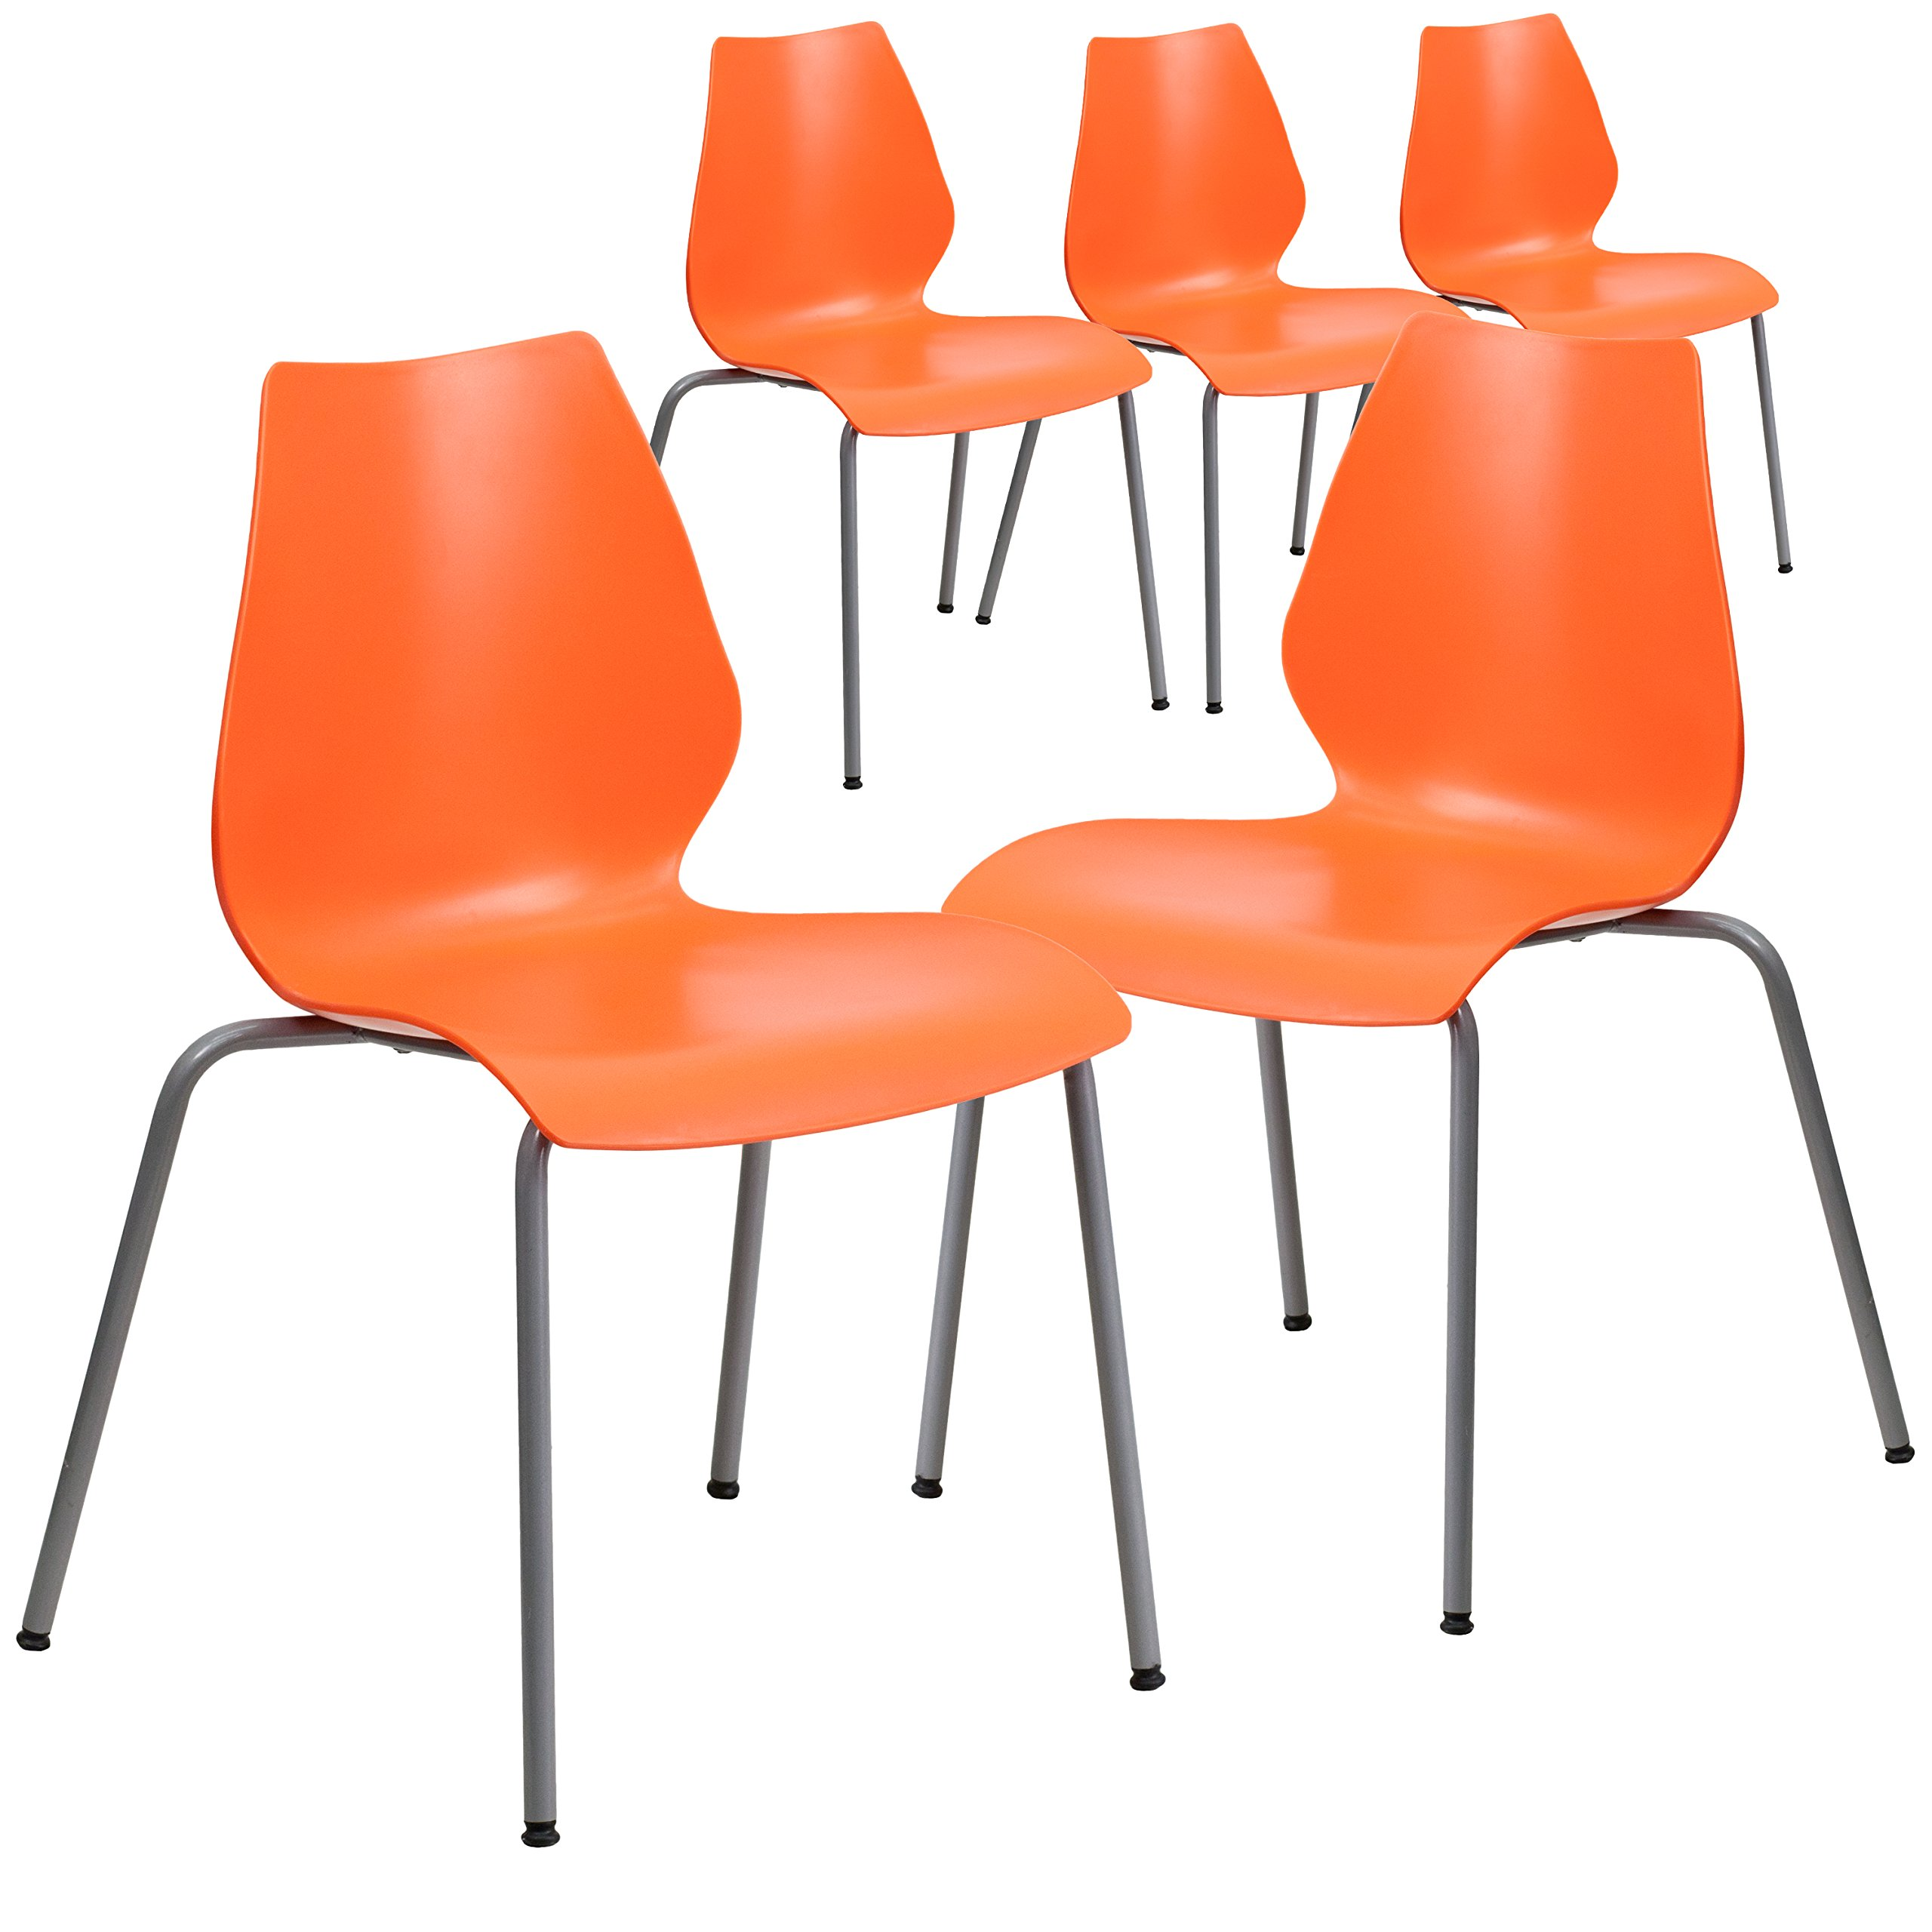 Flash Furniture 5 Pk. HERCULES Series 770 lb. Capacity Orange Stack Chair with Lumbar Support and Silver Frame by Flash Furniture